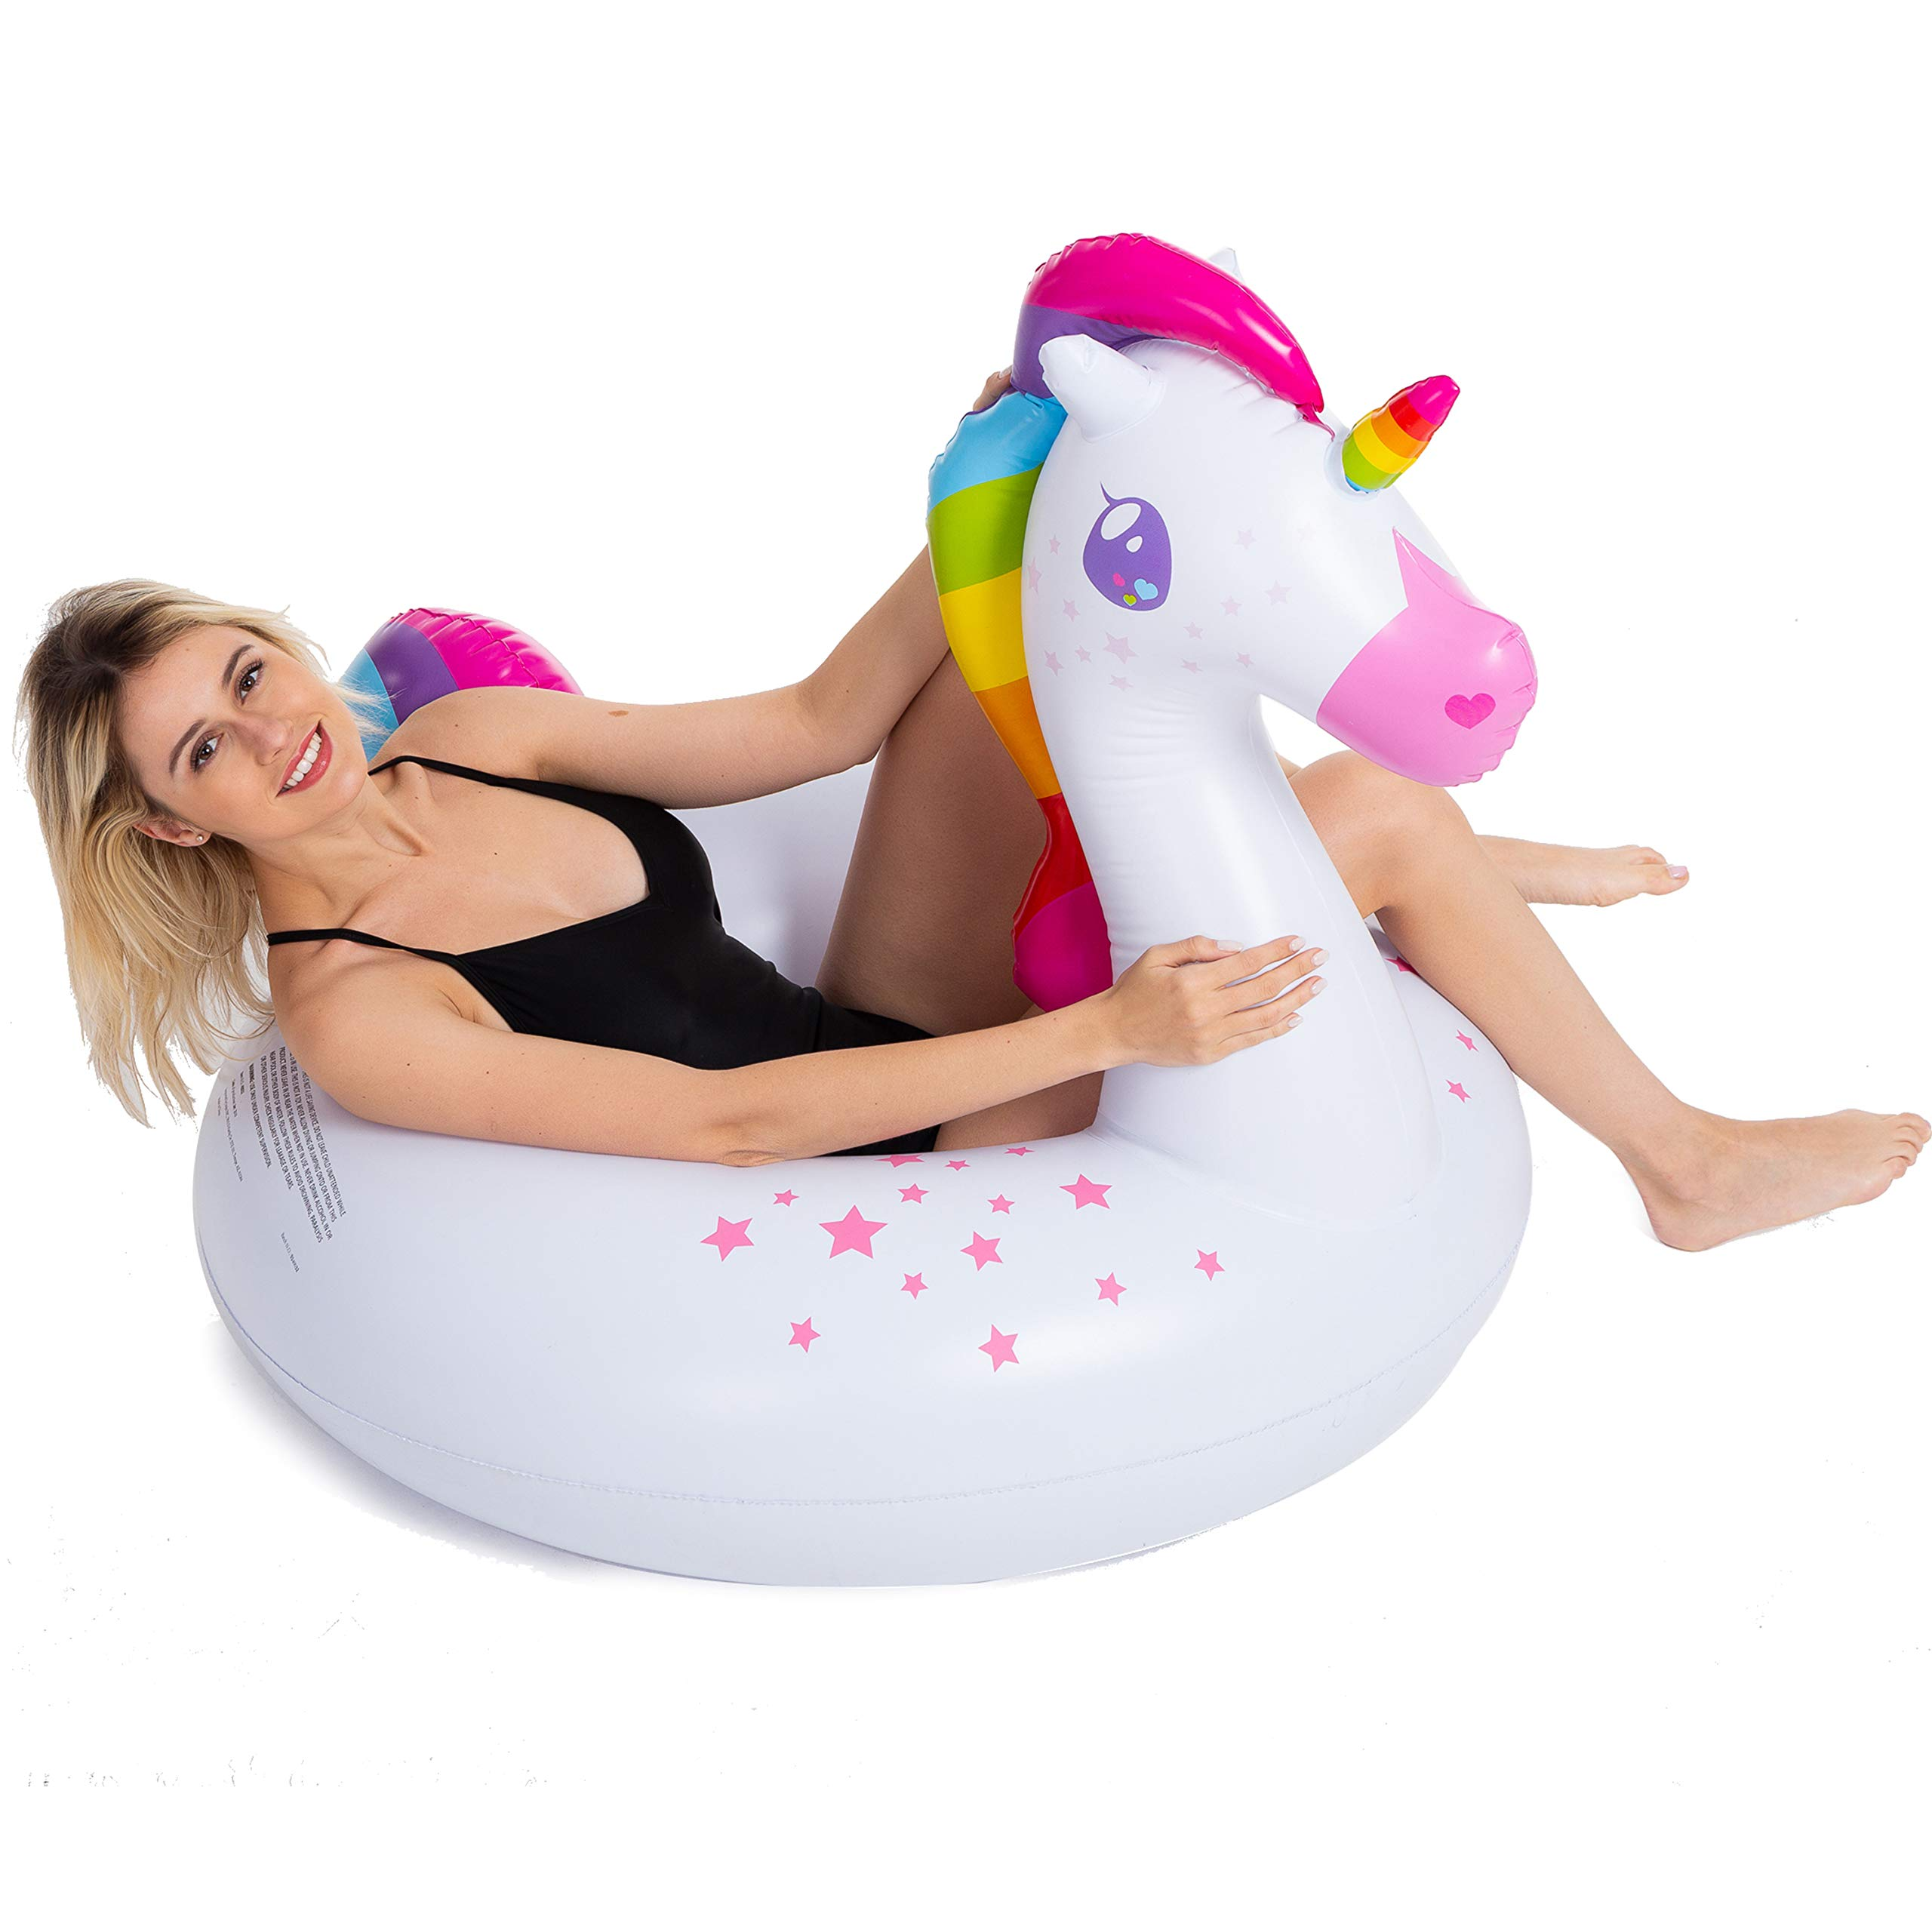 JOYIN Inflatable Flamingo and Unicorn Pool Float 2 Pack, Fun Beach Floaties, Swim Party Toys, Summer Pool Raft Lounger for Adults & Kids (Inflates to Over 4ft. Wide) by JOYIN (Image #5)